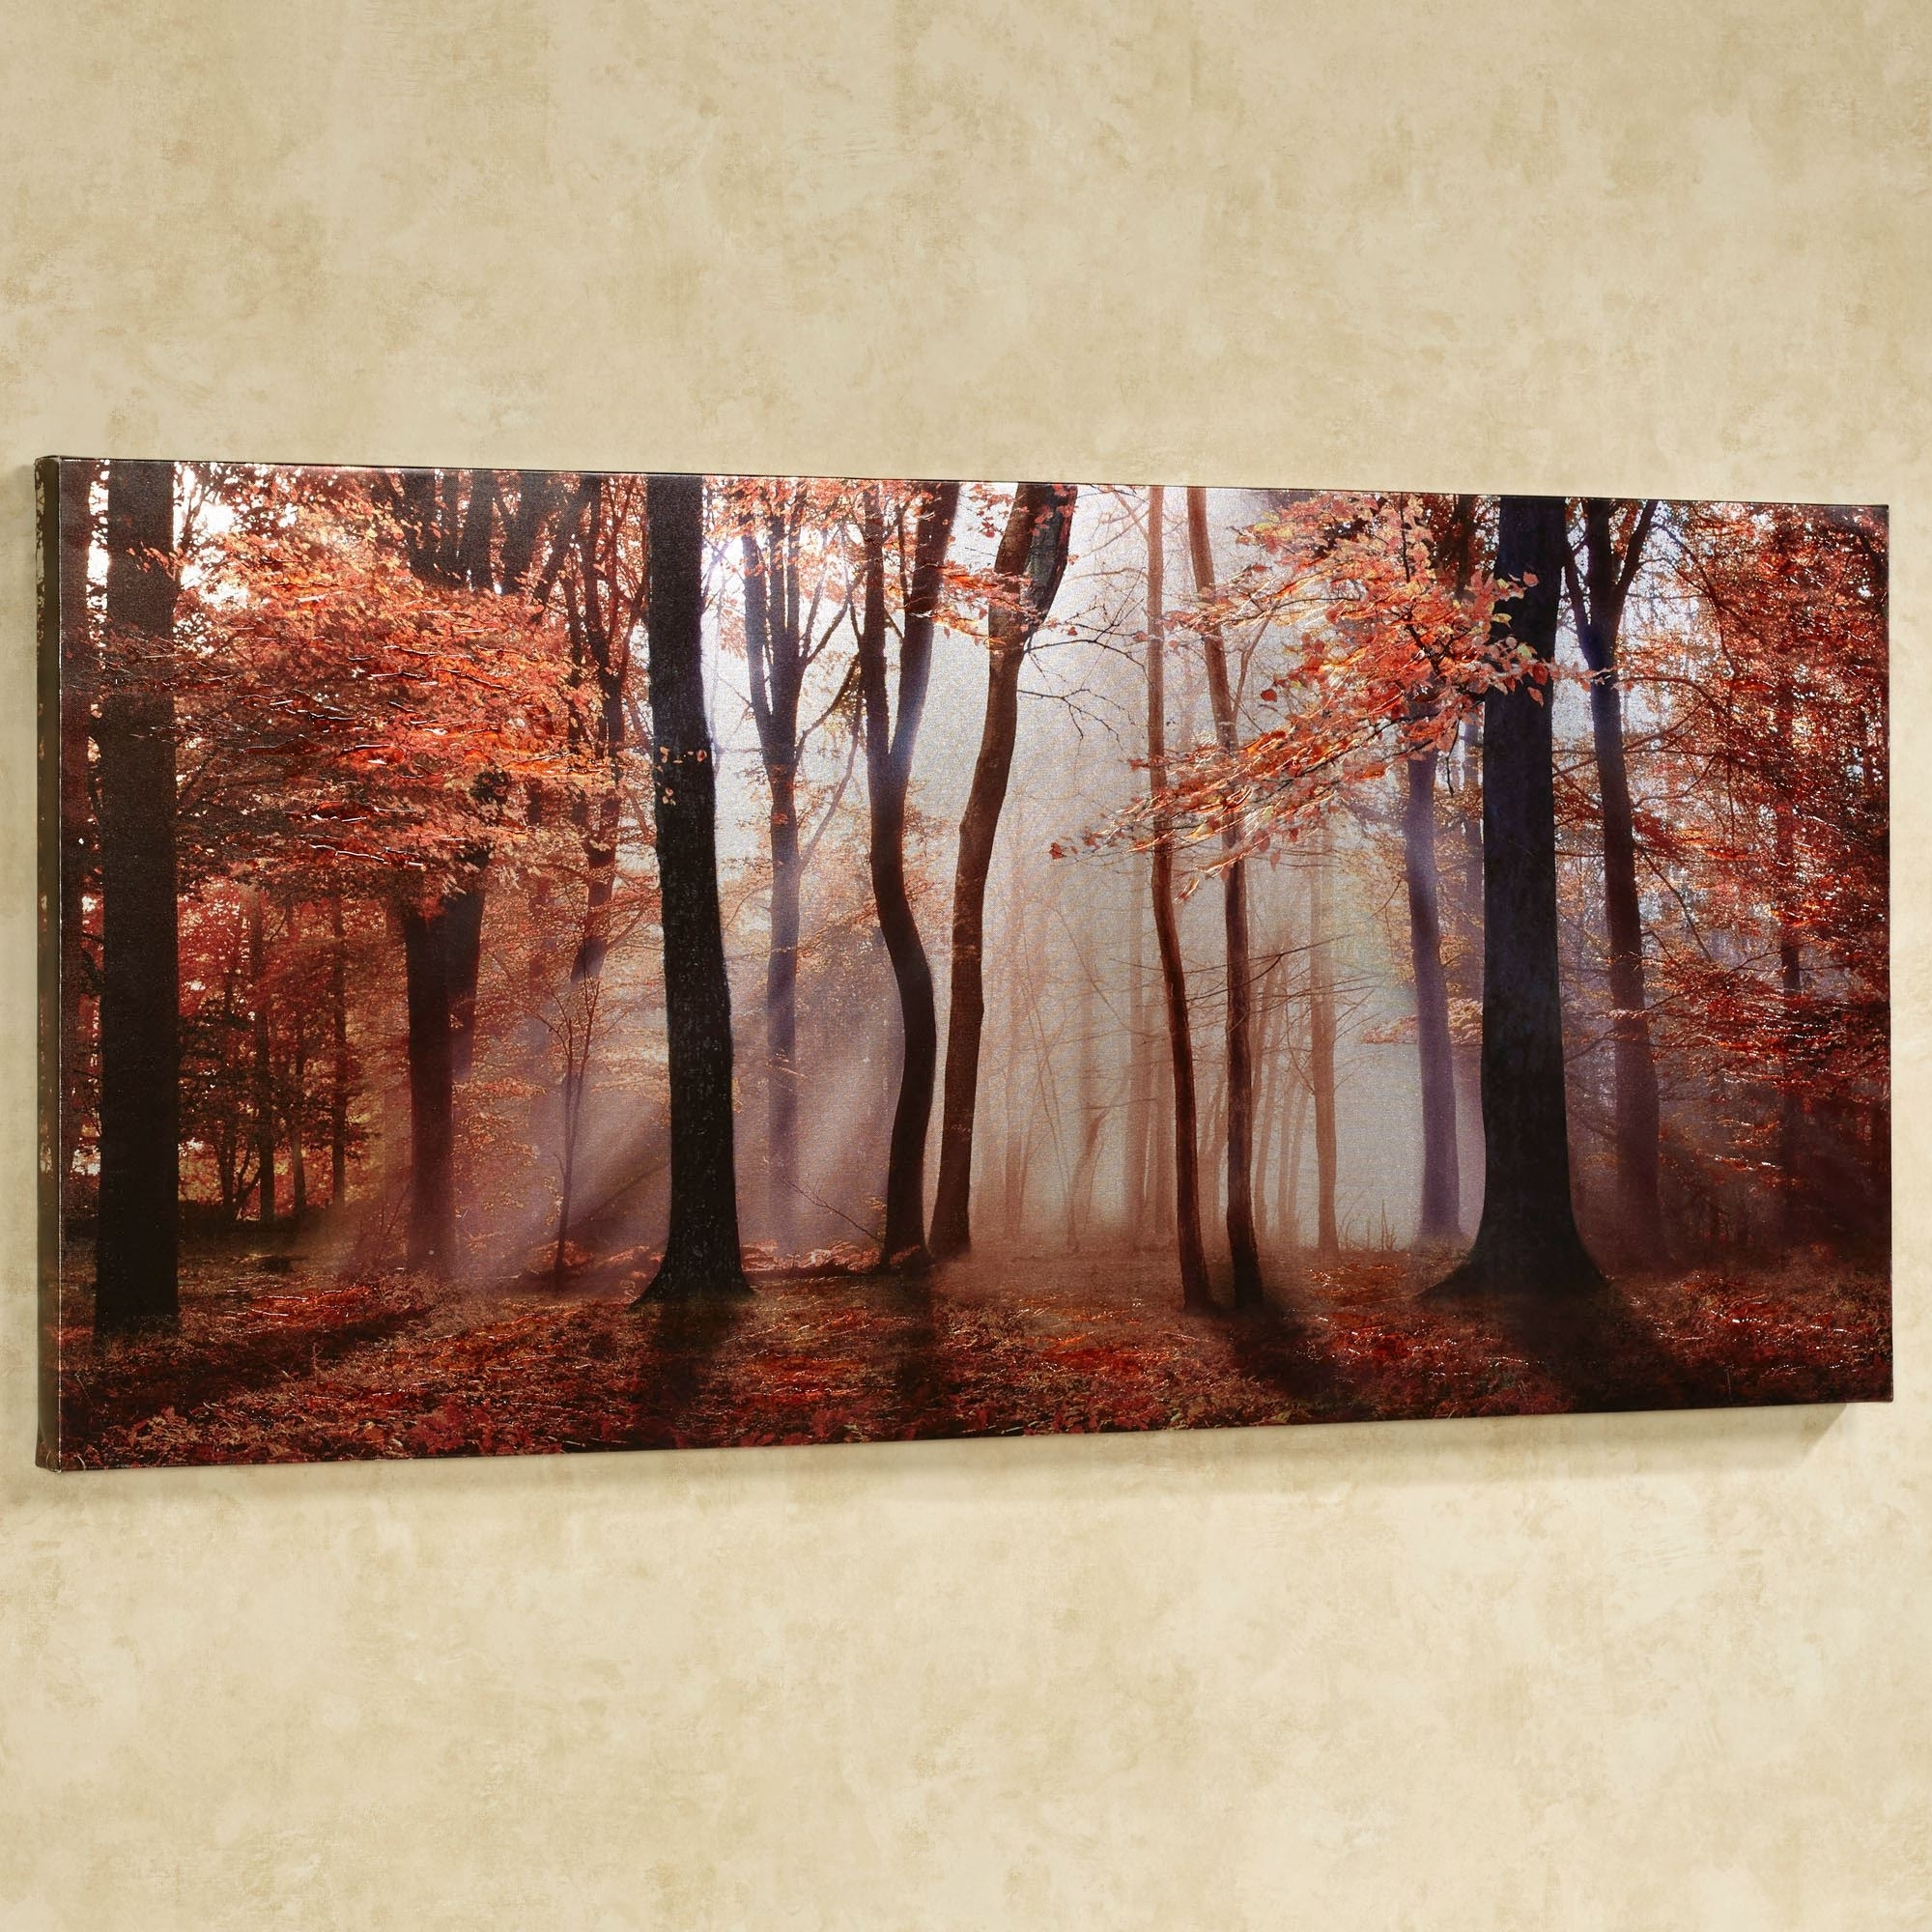 Canvas Wall Art Intended For Trendy Autumns Allure Giclee Canvas Wall Art (View 1 of 15)